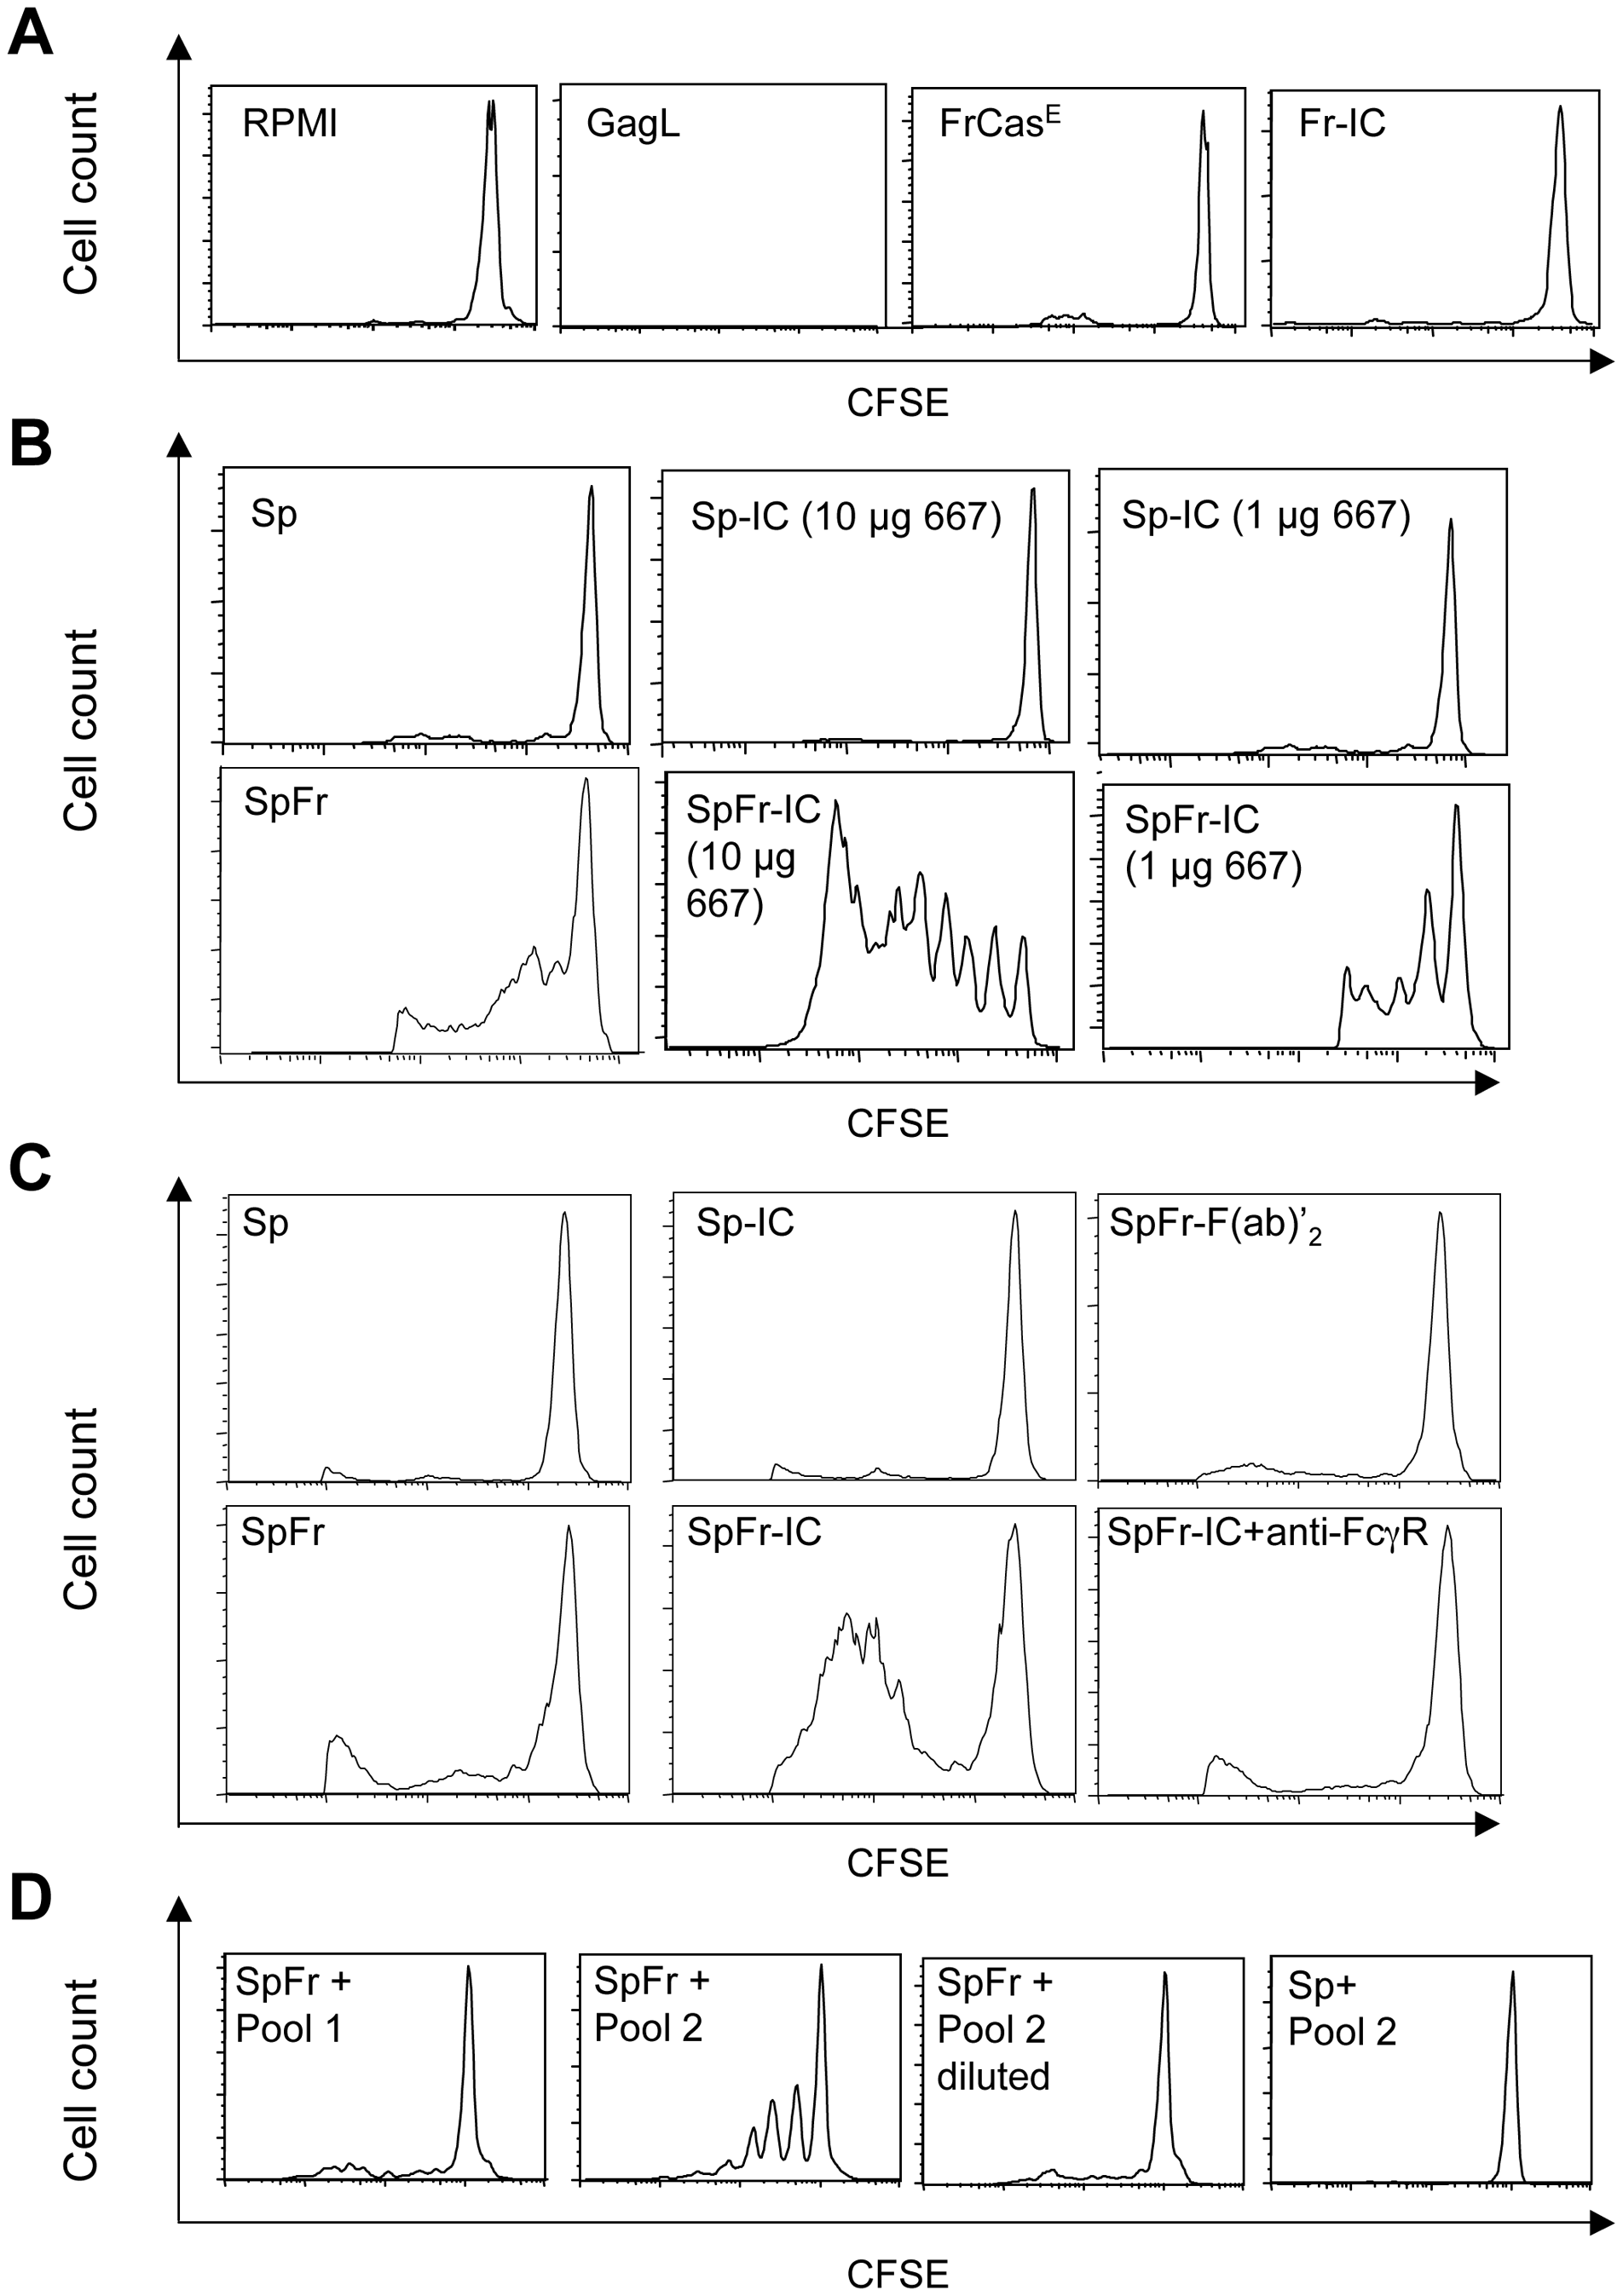 Stimulation of proliferation of GagL-TCR-TG CD8<sup>+</sup> T cells by 667 and sera from infected/treated mice.